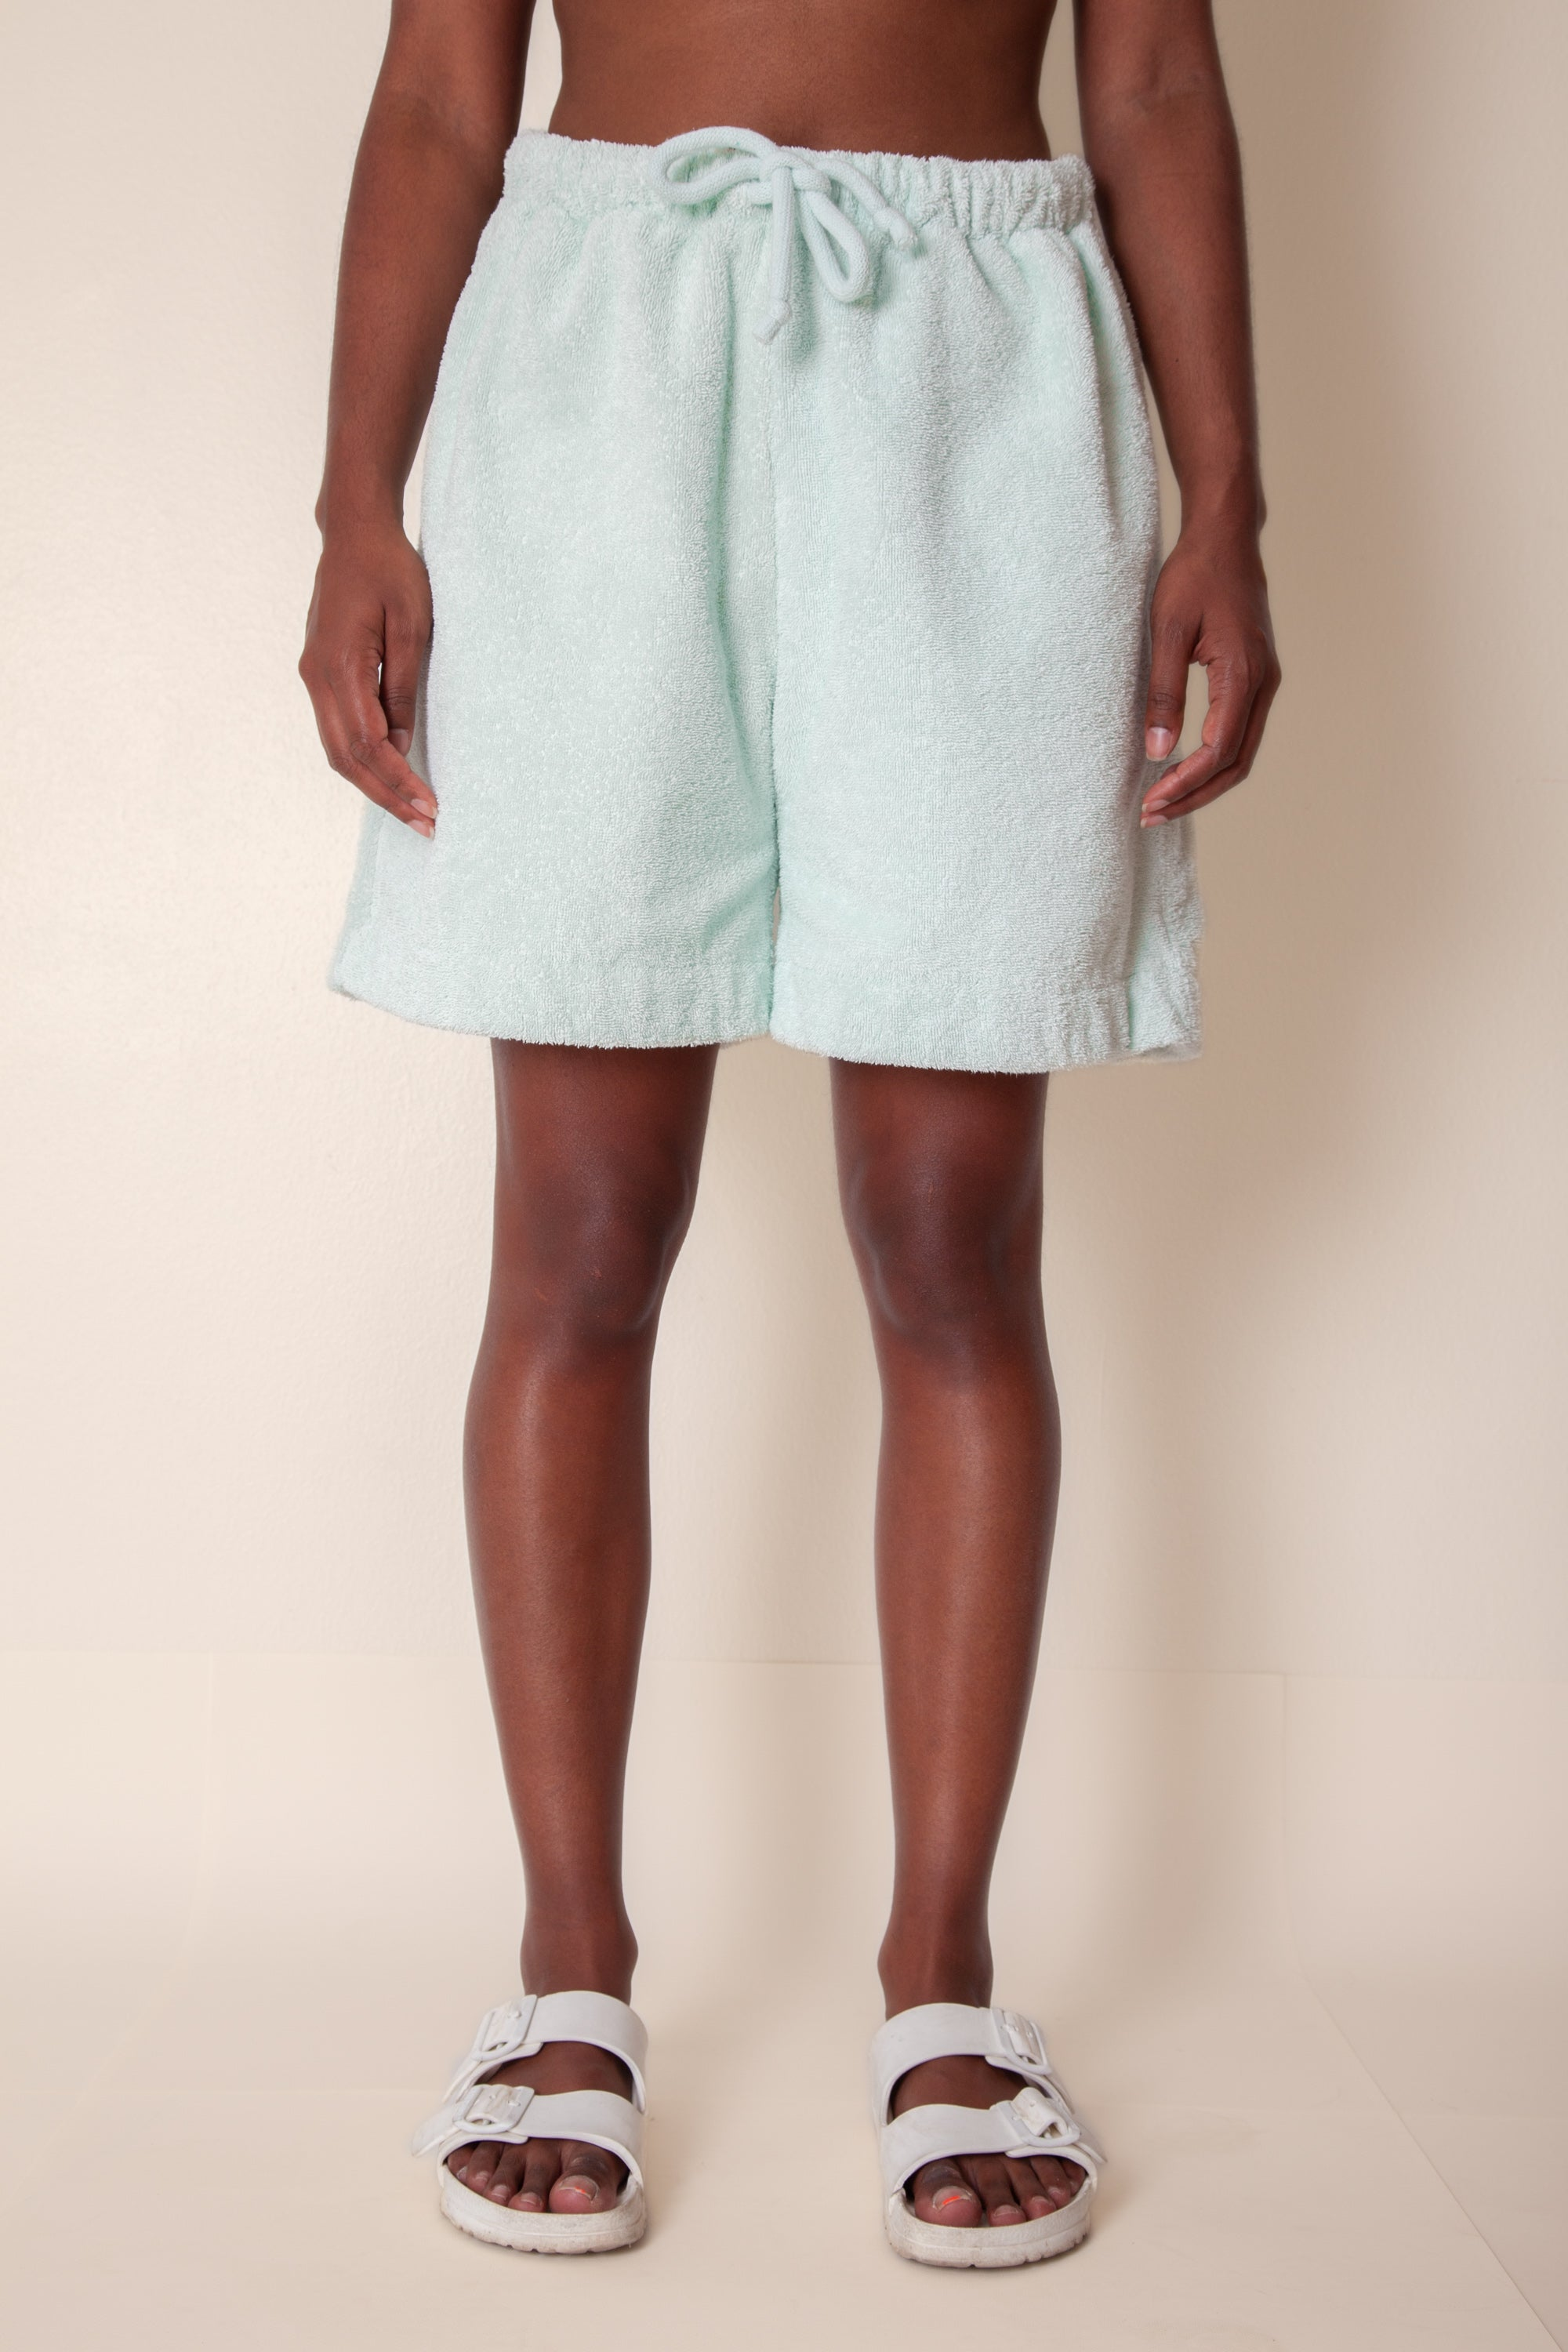 Unisex Terry Basketball Shorts in Ice Mint